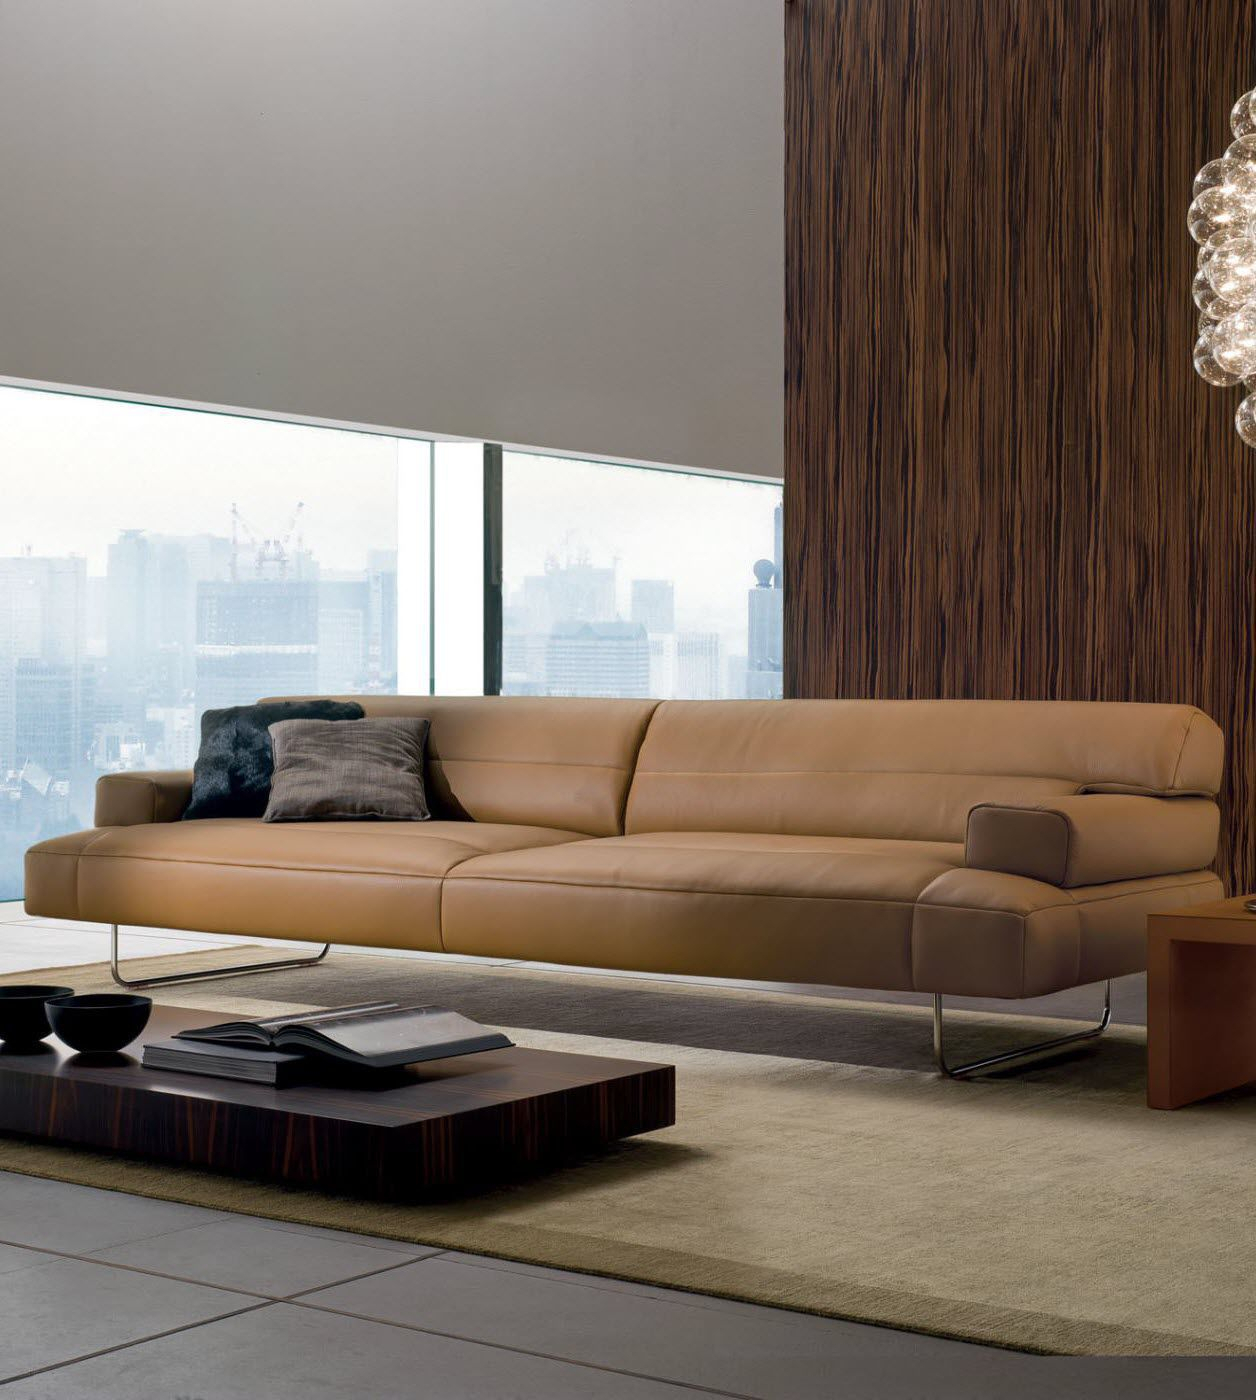 Leather Sofa / Modular / Corner / Contemporary – Chimeramatteo Intended For Matteo Arm Sofa Chairs (Image 8 of 25)